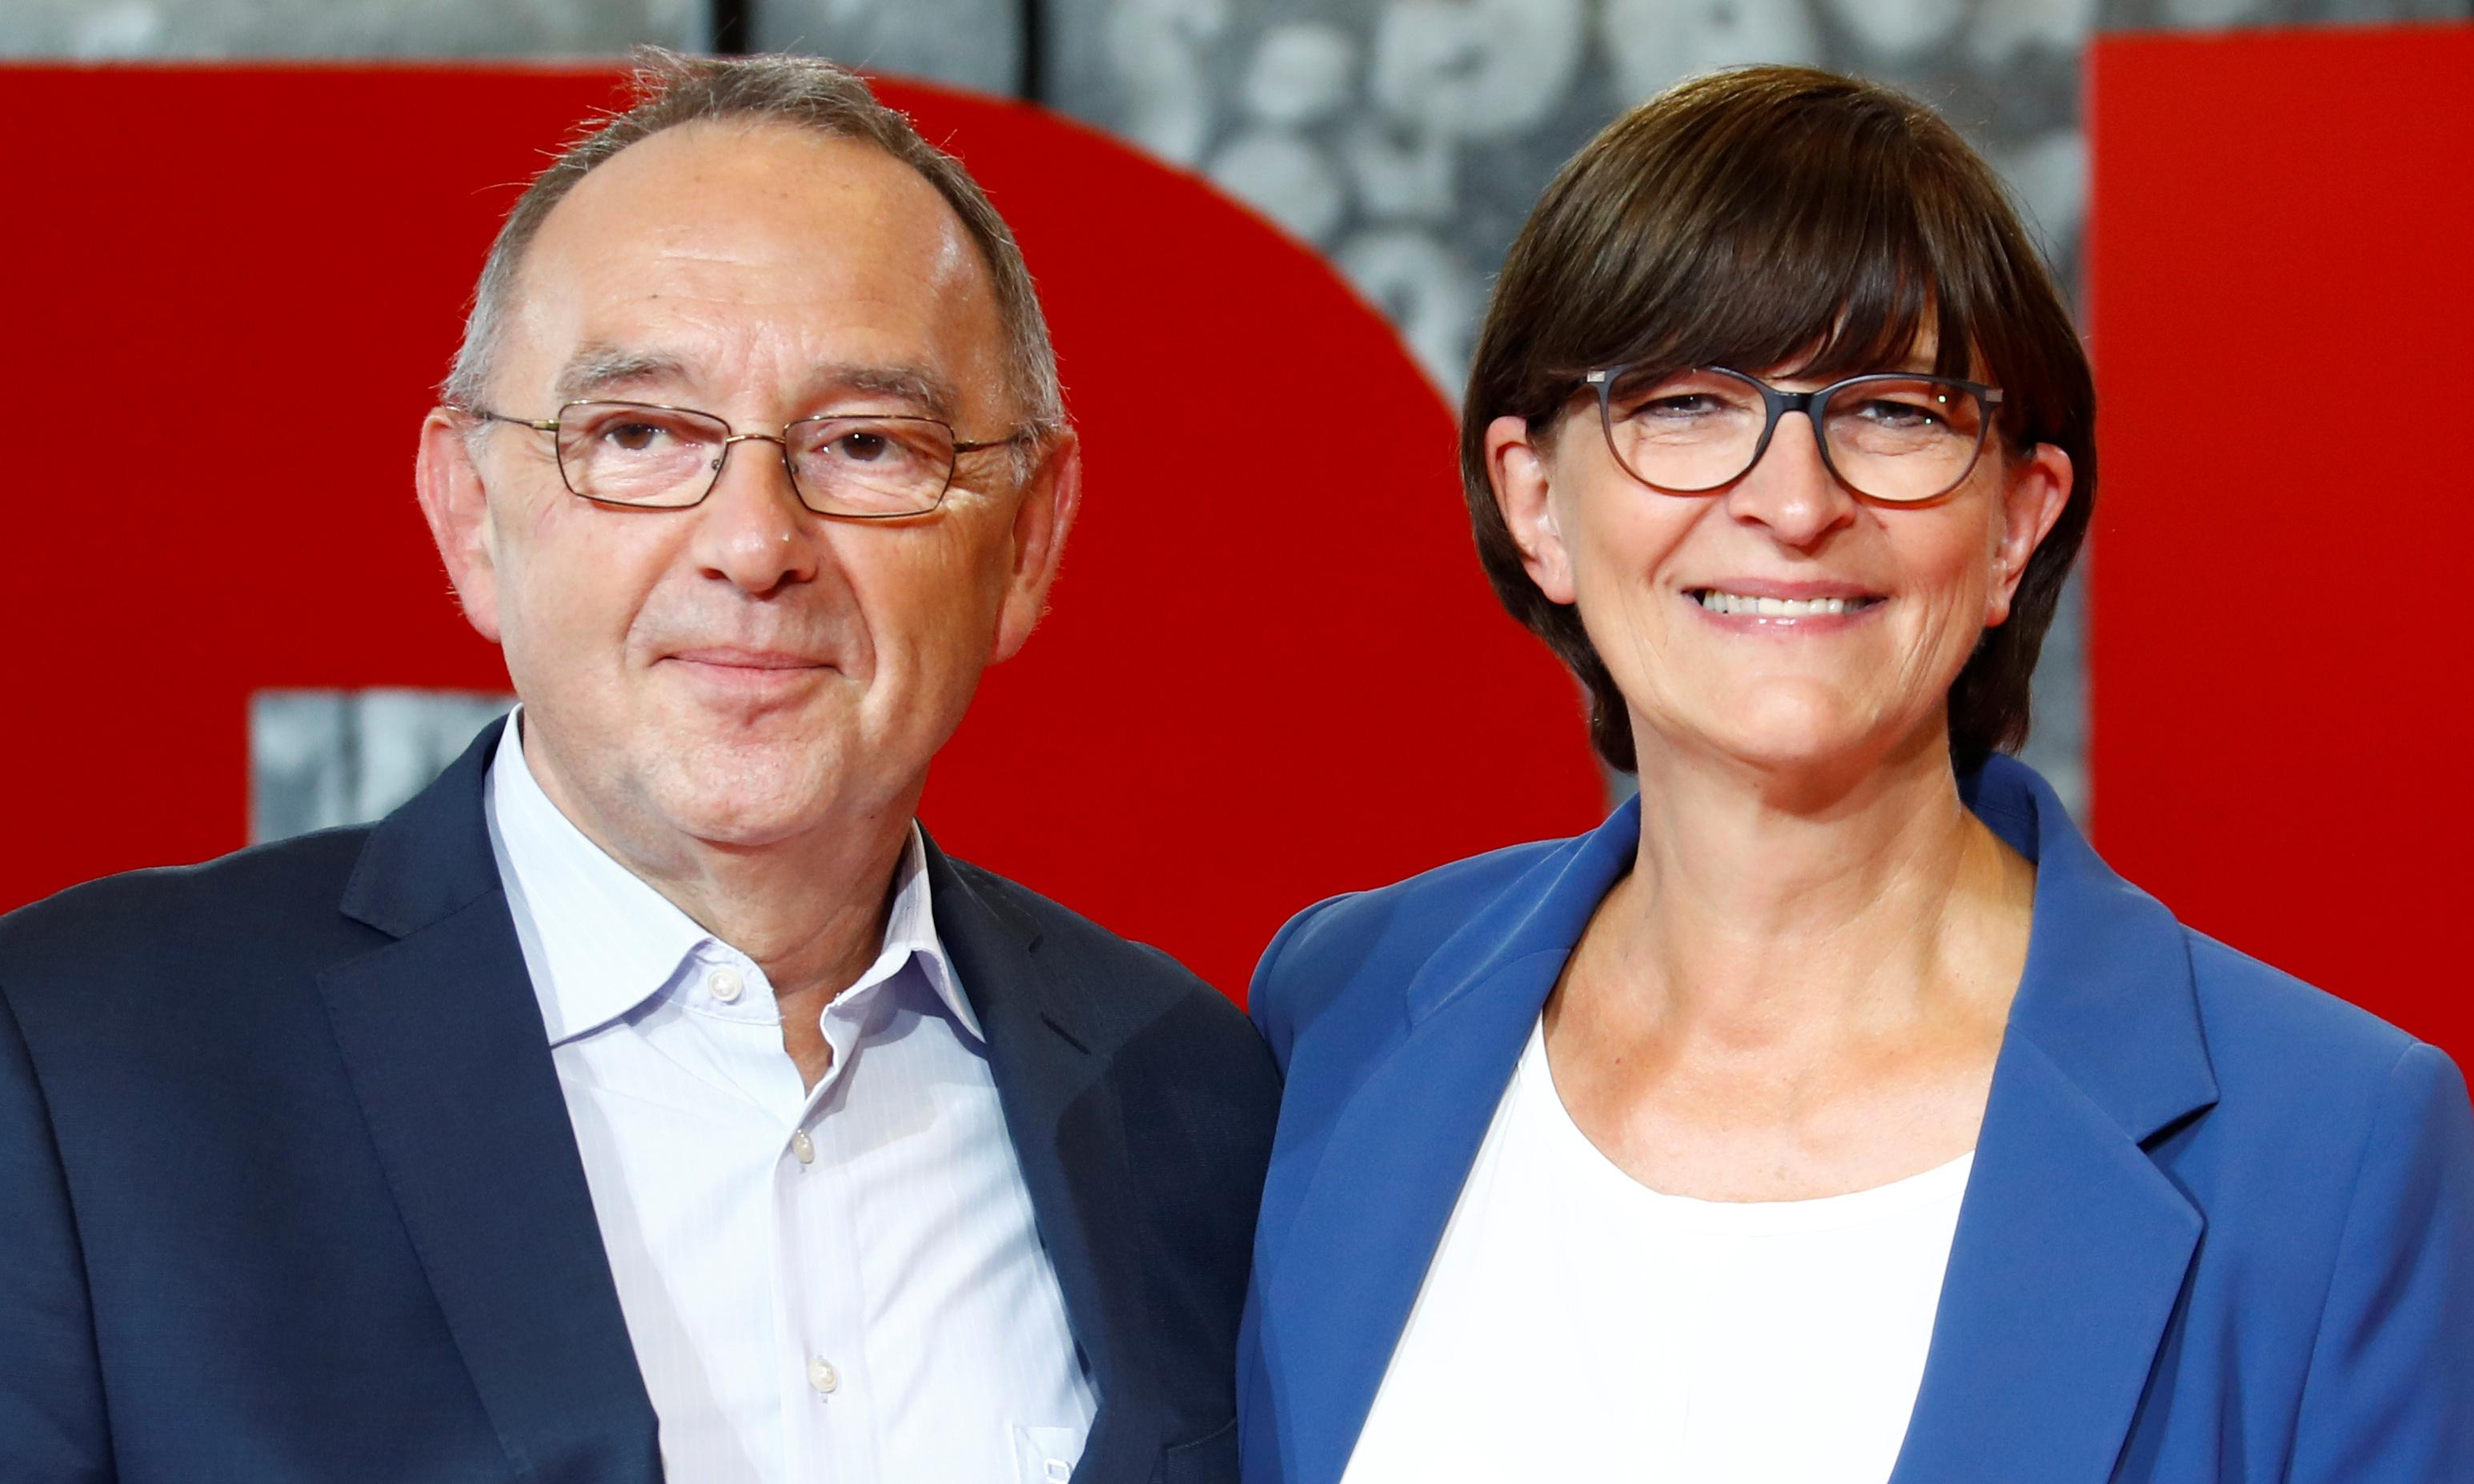 SPD duo aim to lead Germany out of 'neoliberal wilderness'